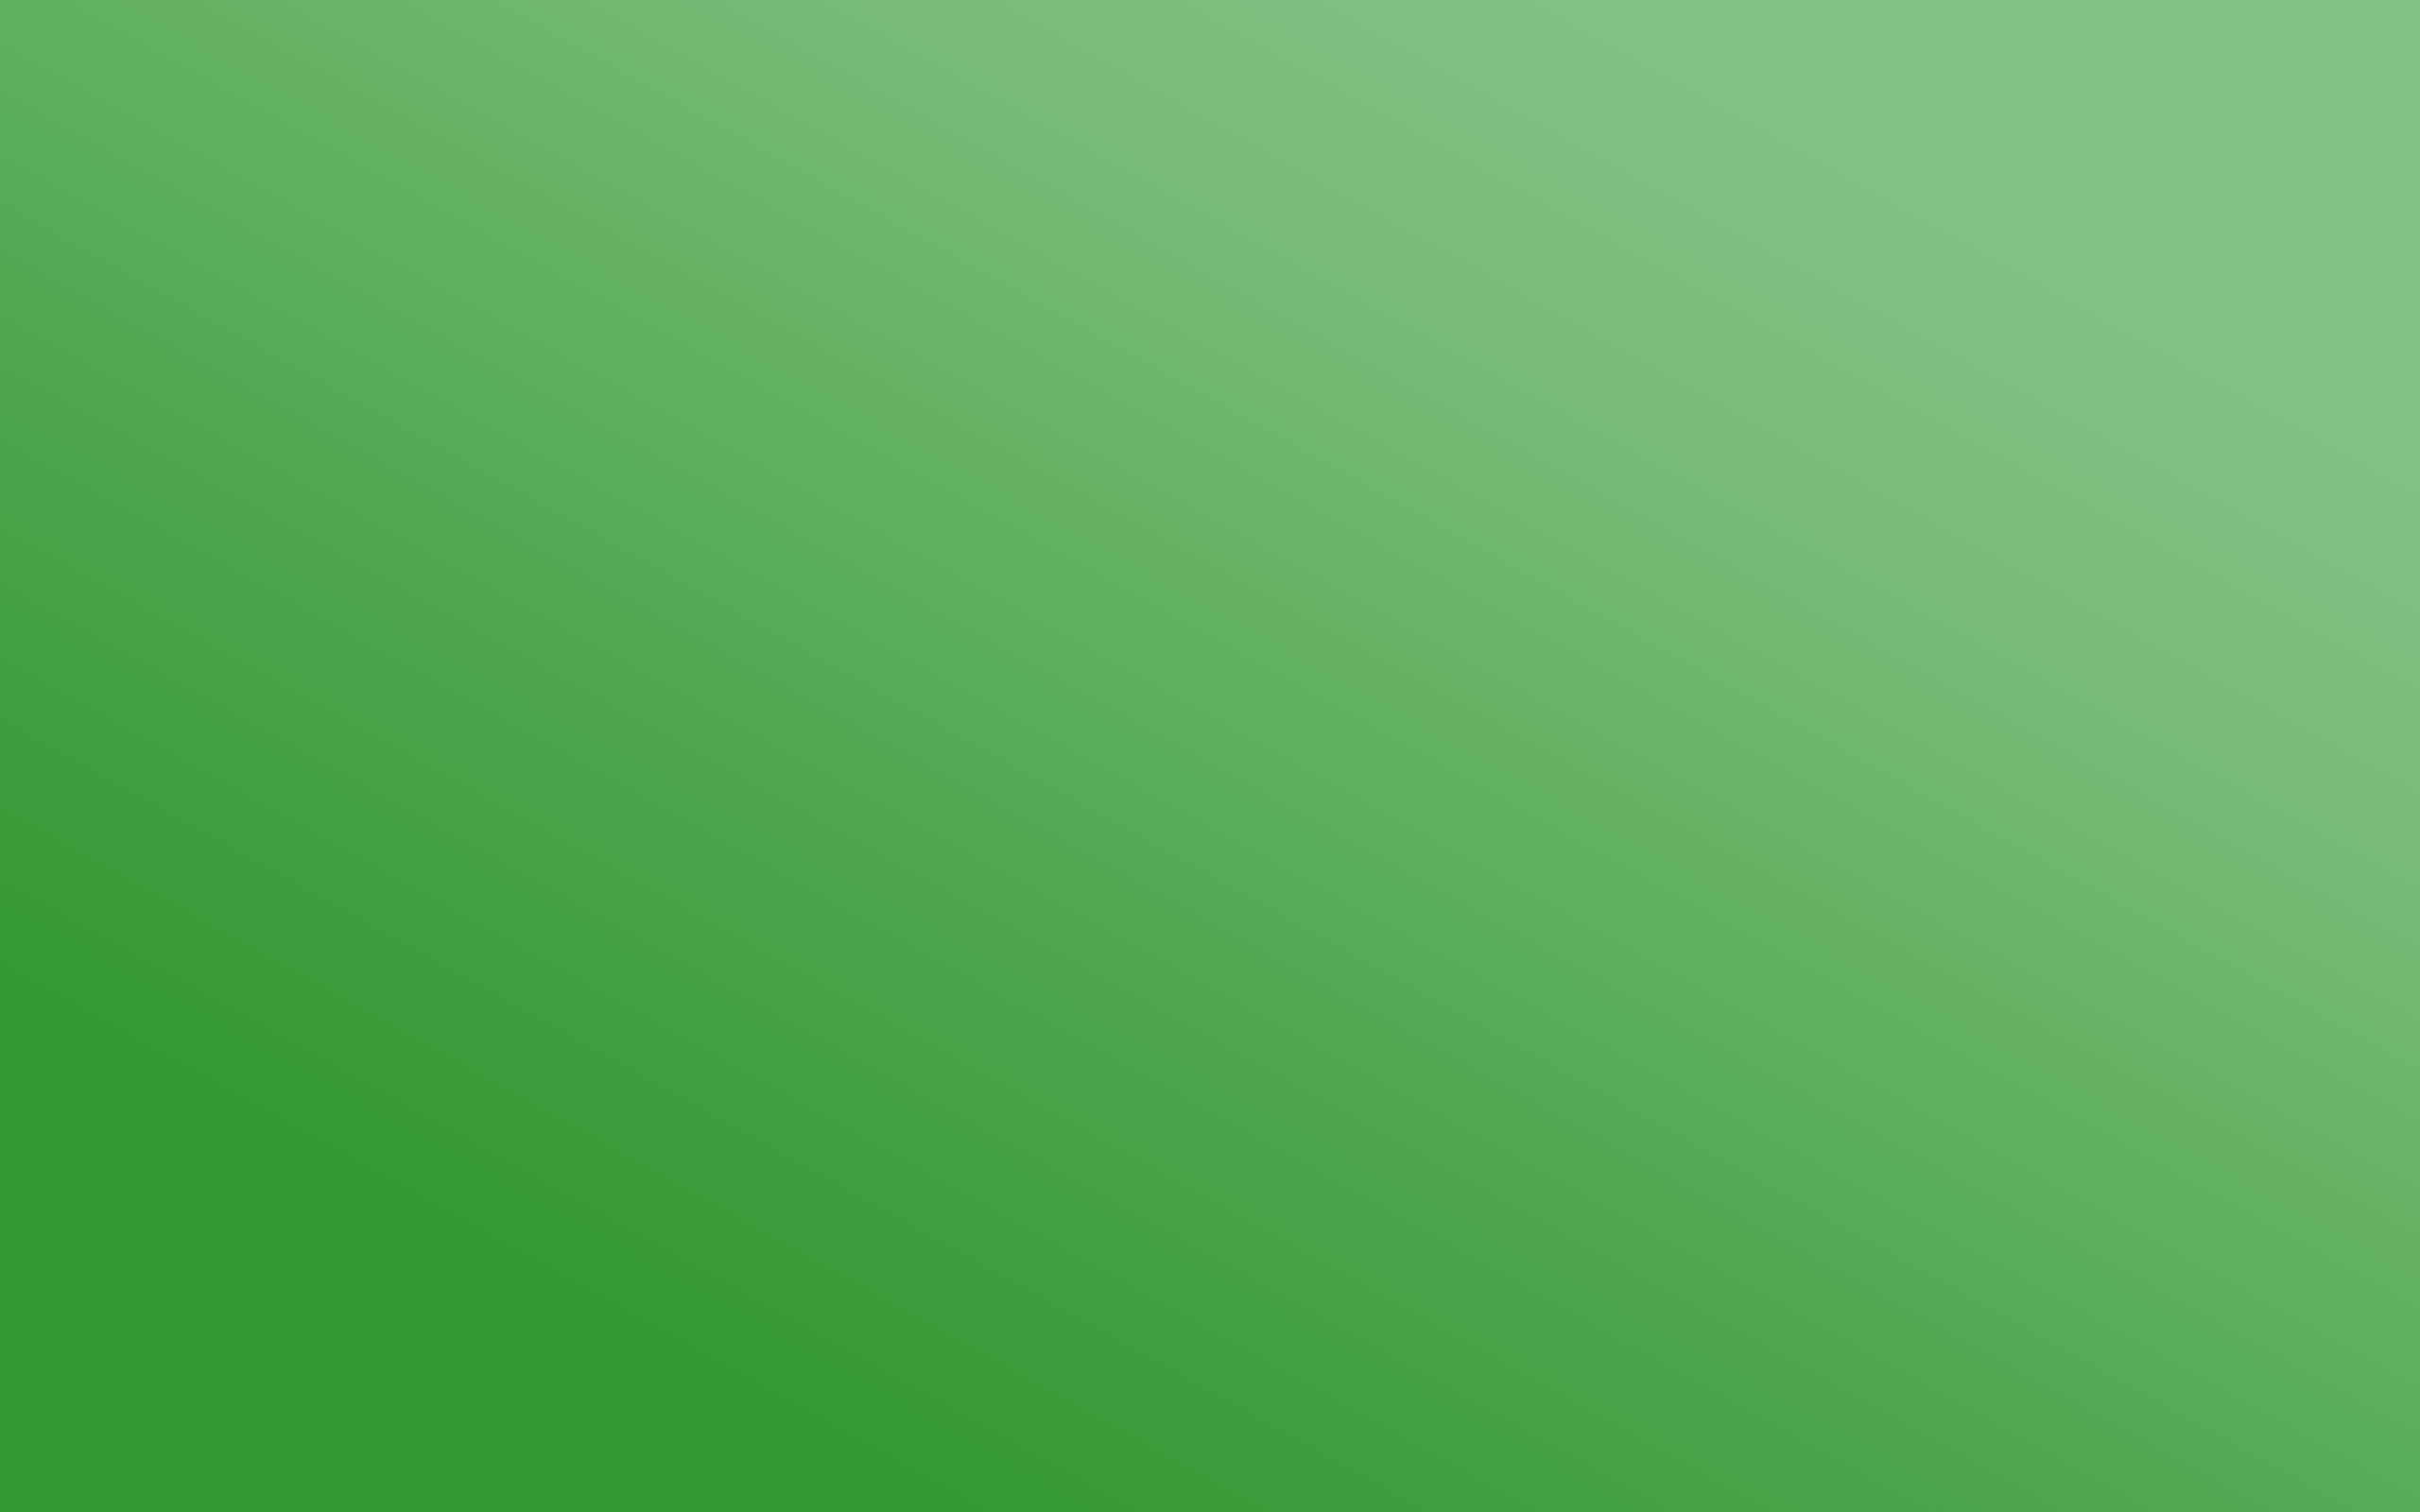 2560x1600 - Solid Green 27